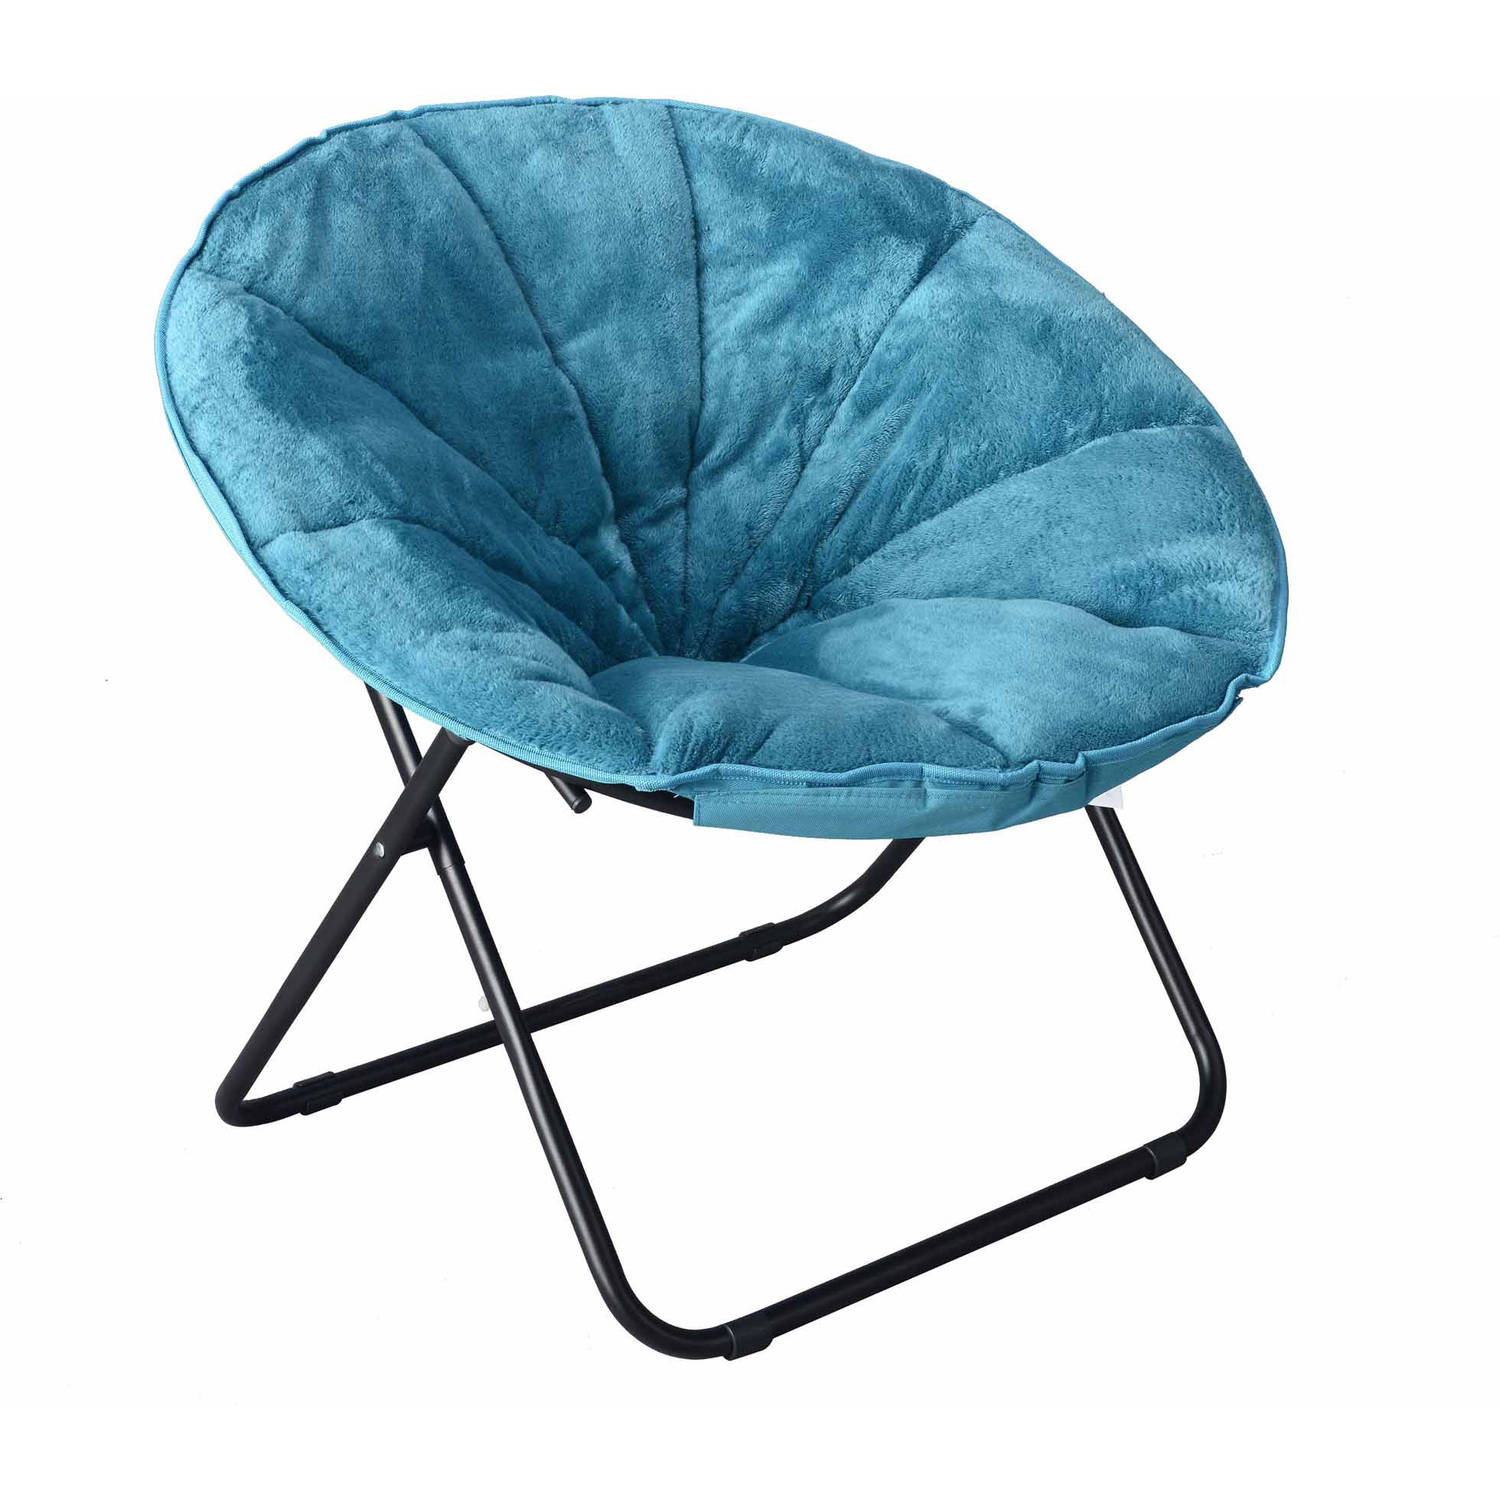 mainstays plush saucer chair multiple colors walmart com rh walmart com chairs for kids rooms teens Reading Room Chairs